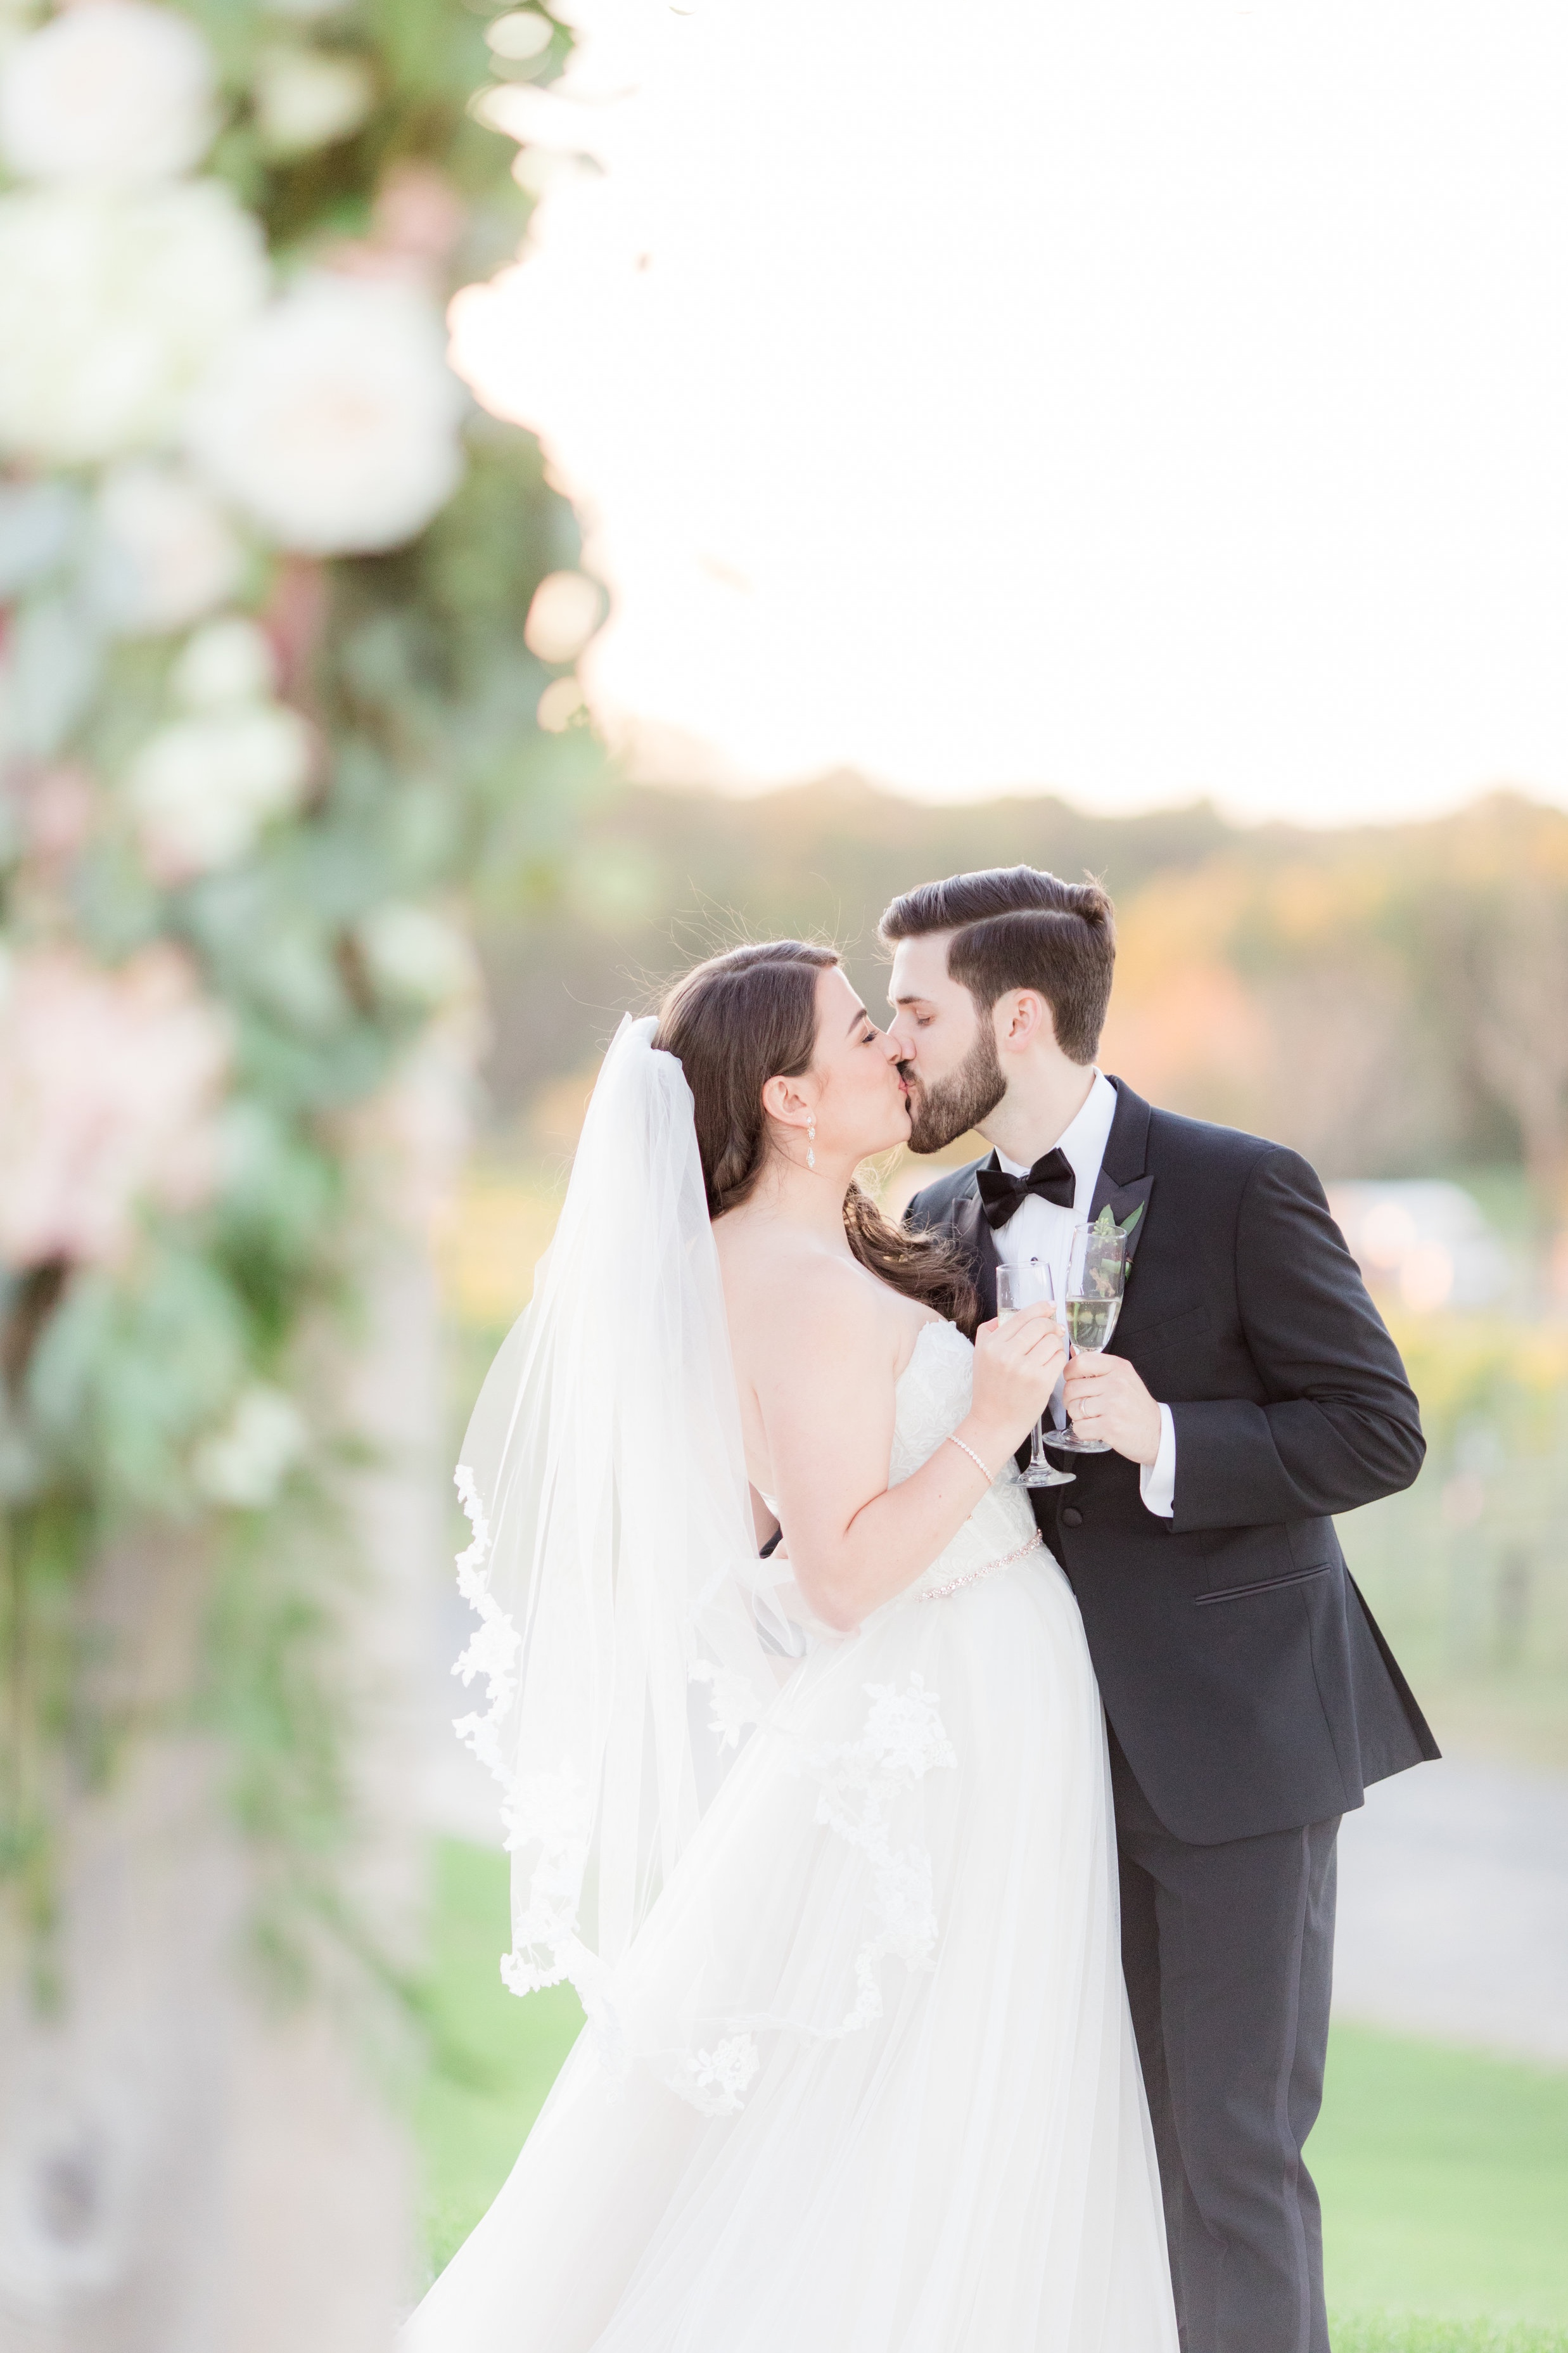 Wedding Collections - Our collections begin at $5000 and include an engraved keepsake box with prints and the USB. Heirloom albums are also available.